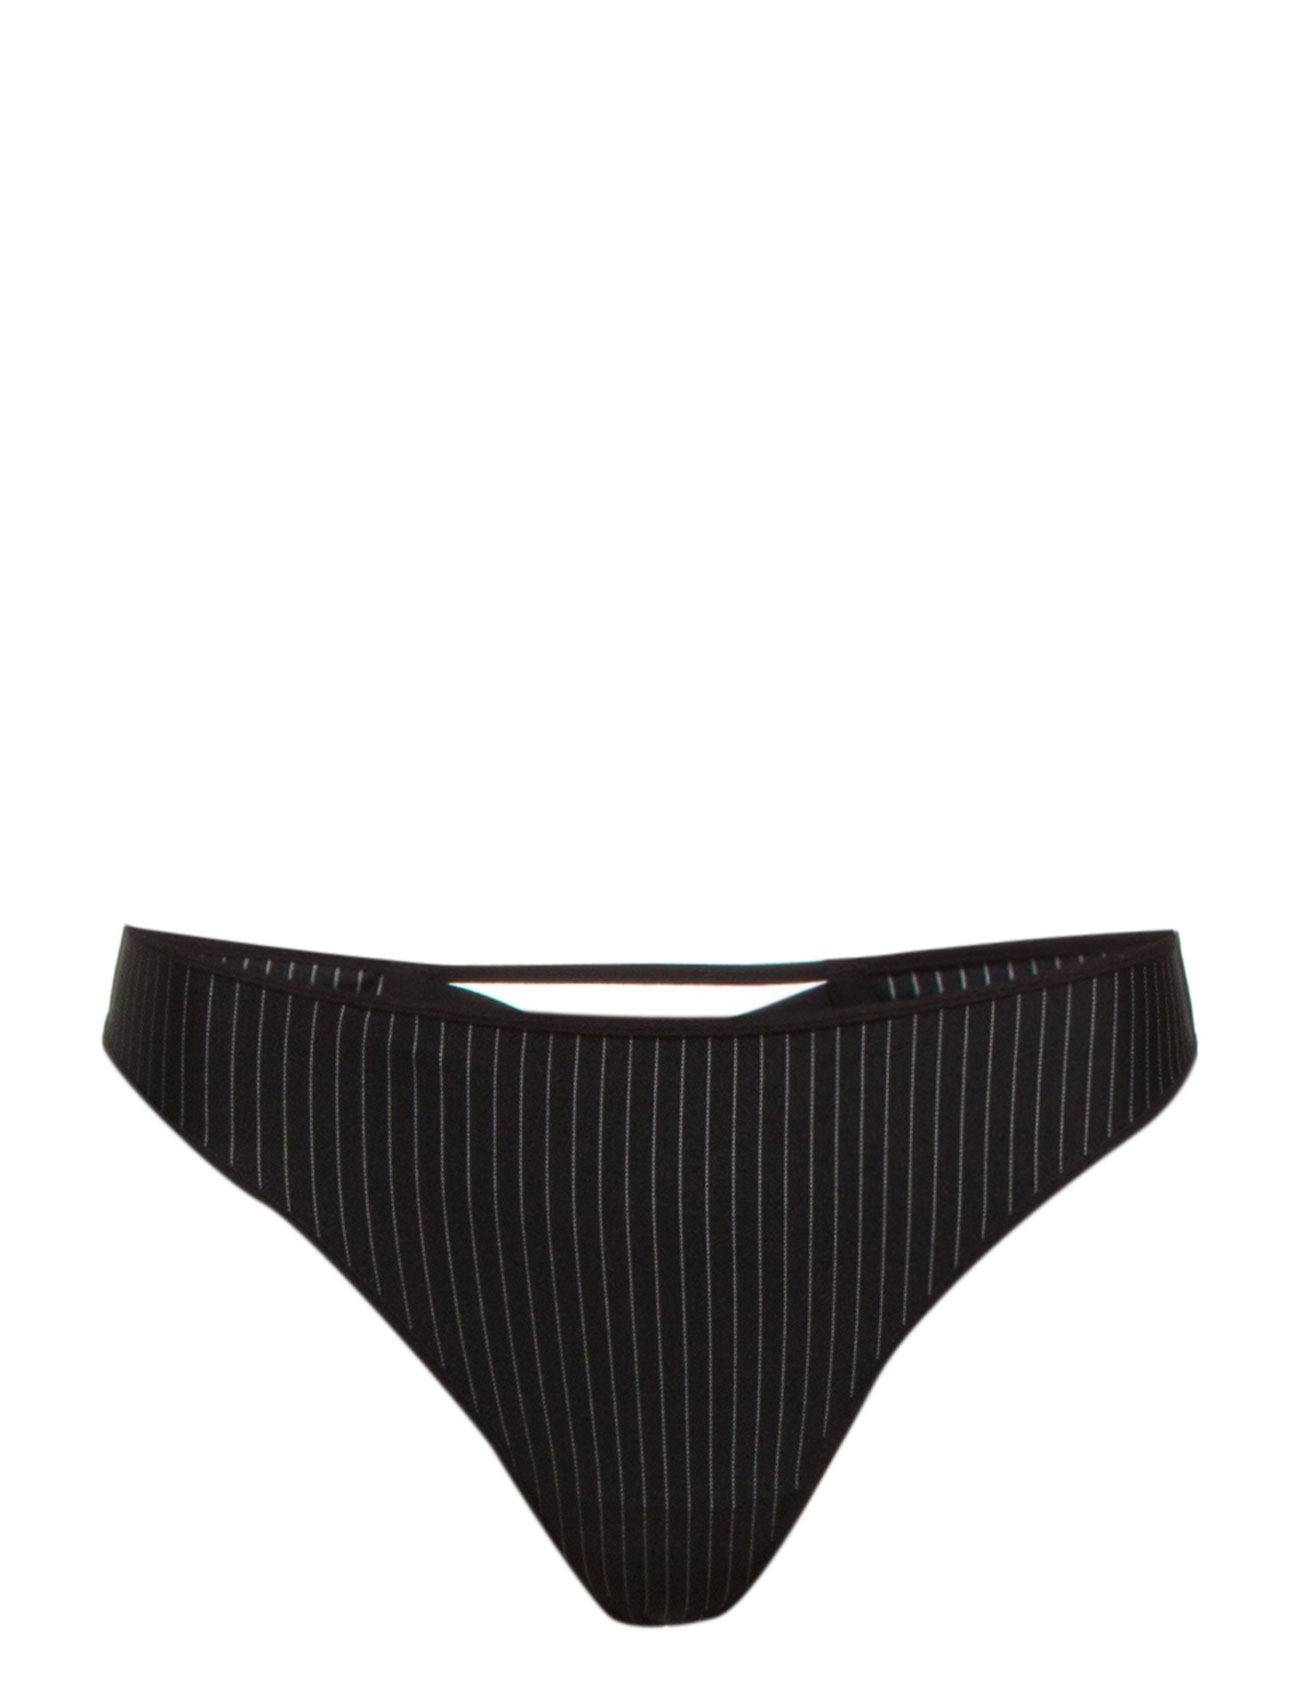 Marlies Dekkers Md Gloria Pinstripe Thong 4